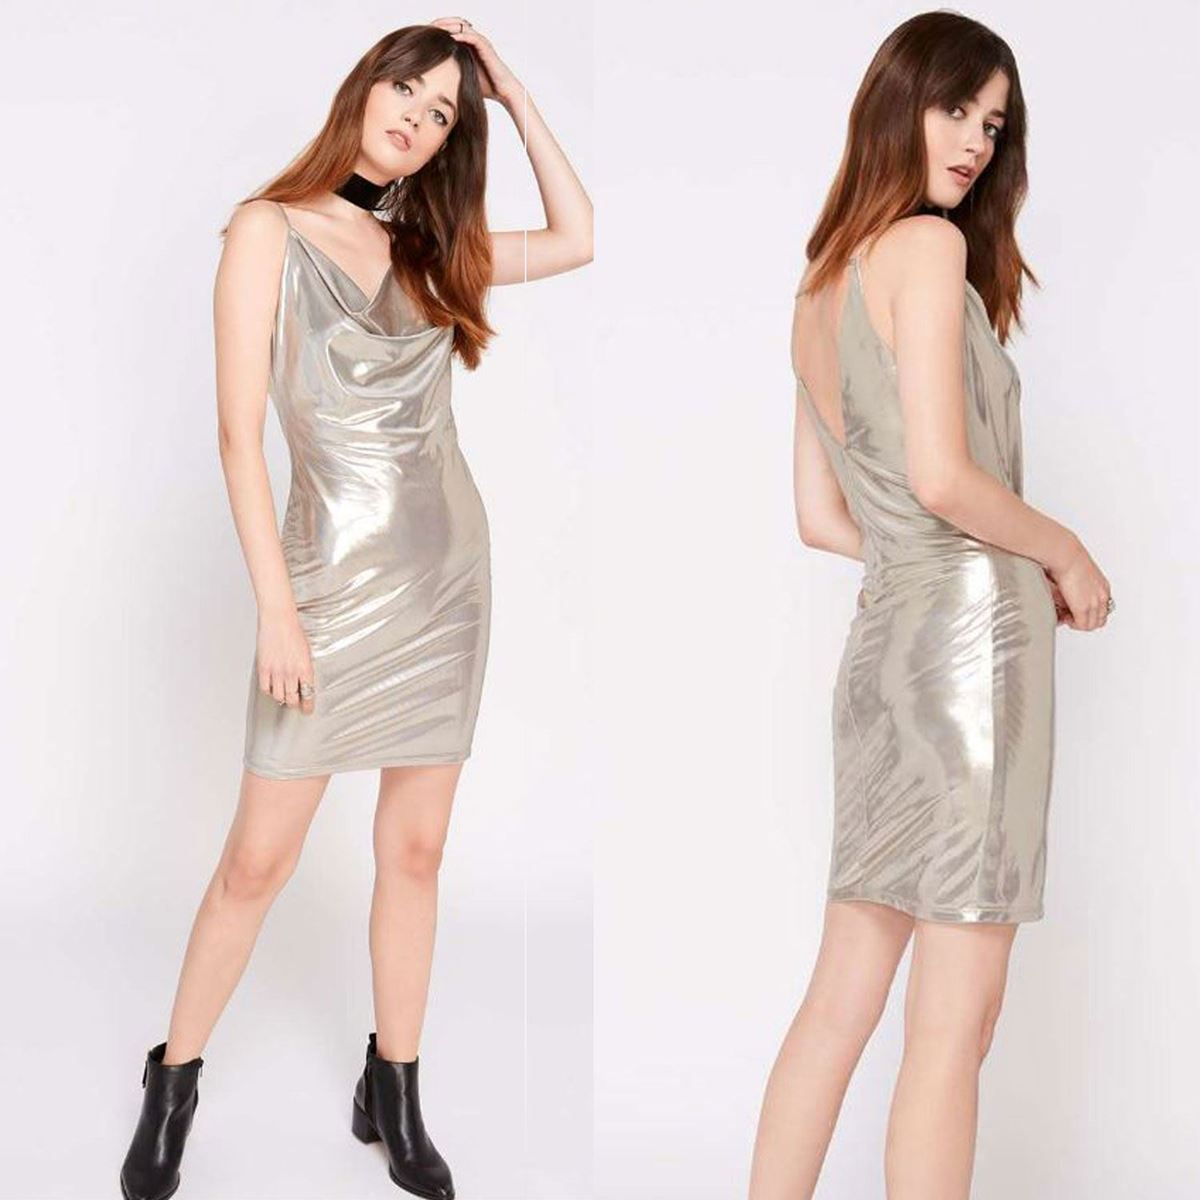 Silver Lame Cowl Neck Dress, Miss Selfridge, [$42](http://us.missselfridge.com/webapp/wcs/stores/servlet/ProductDisplay?searchTermScope=3&searchType=ALL&viewAllFlag=false&beginIndex=1&langId=-1&productId=26319675&pageSize=20&defaultGridLayout=3&CE3_ENDECA_PRODUCT_ROLLUP_ENABLED=N&searchTerm=MS18D75QSLV&productOnlyCount=1&catalogId=34080&productIdentifierproduct=product&geoip=search&x=25&searchTermOperator=LIKE&sort_field=Relevance&y=11&storeId=13069&qubitRefinements=siteId%3DMissSelfridgeUS&affiliate_id=1517766&utm_medium=affiliate&network=zxAU&cmpid=aff_1517766_zxAU). This is the one Ken recommended.